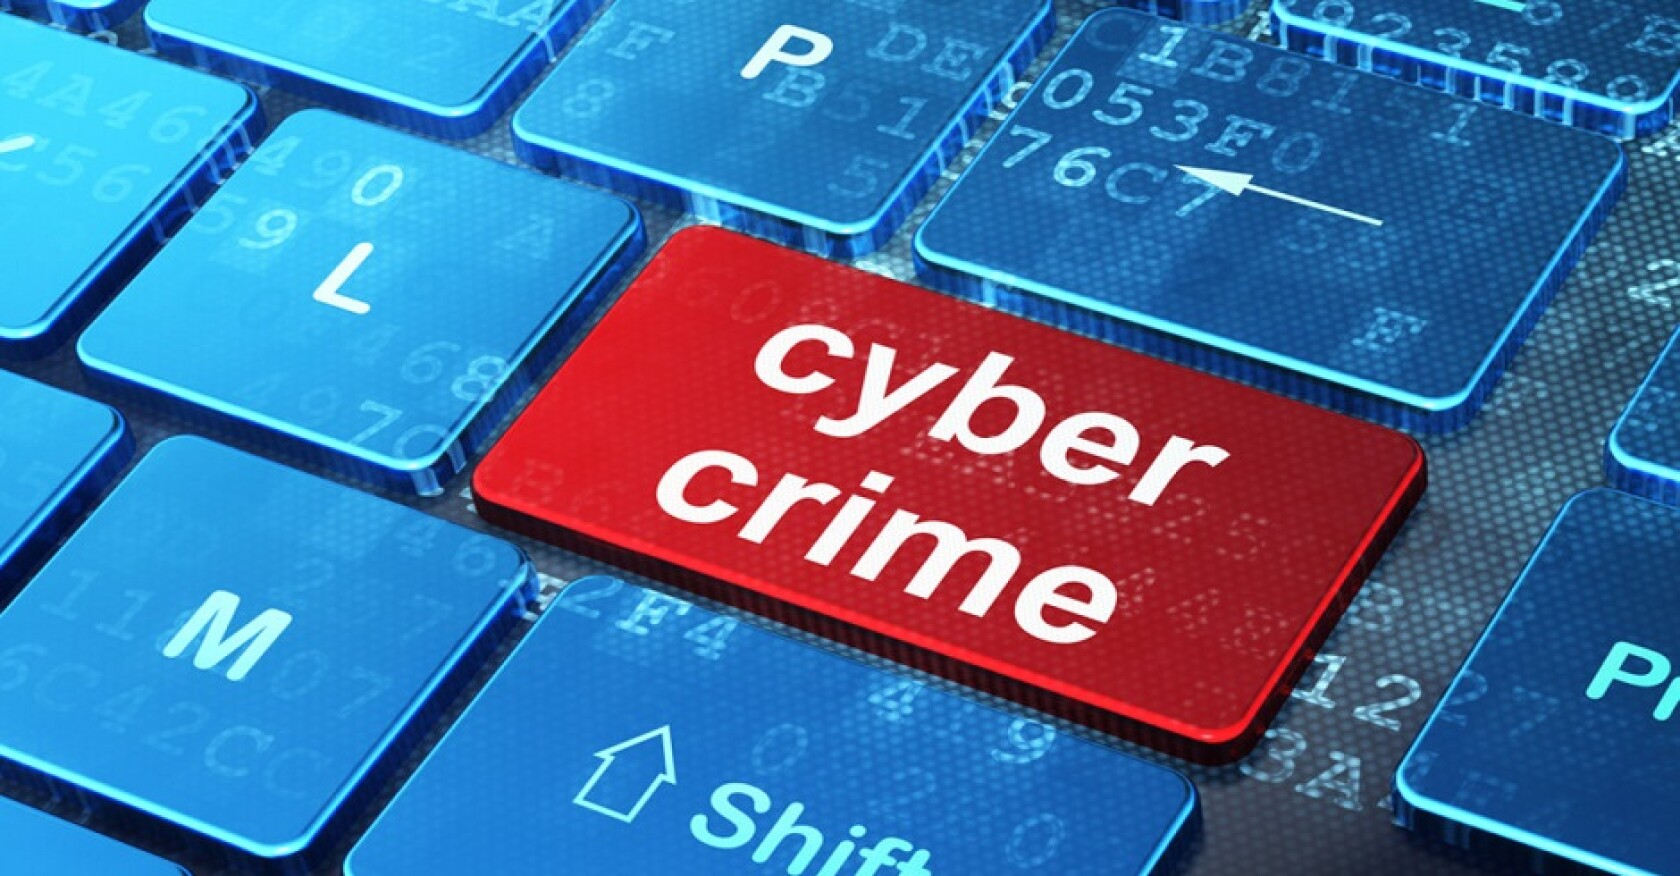 Westpac cyber attack exposes private details of 100,000